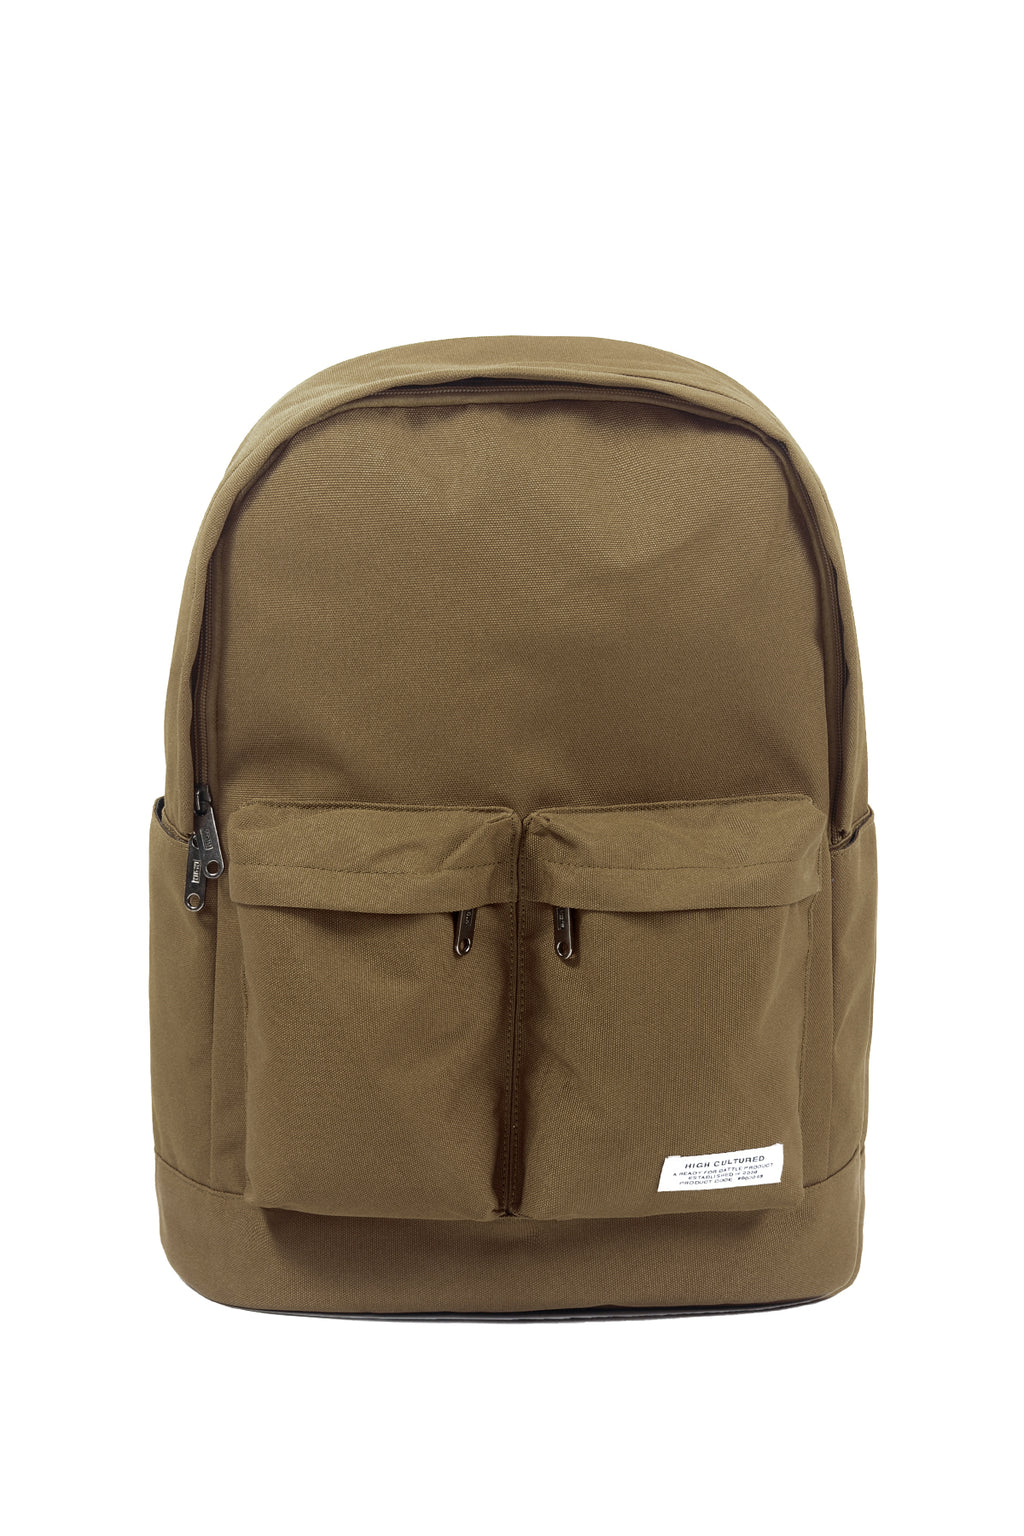 TERRA 2-POCKETS DAYBAG - 202